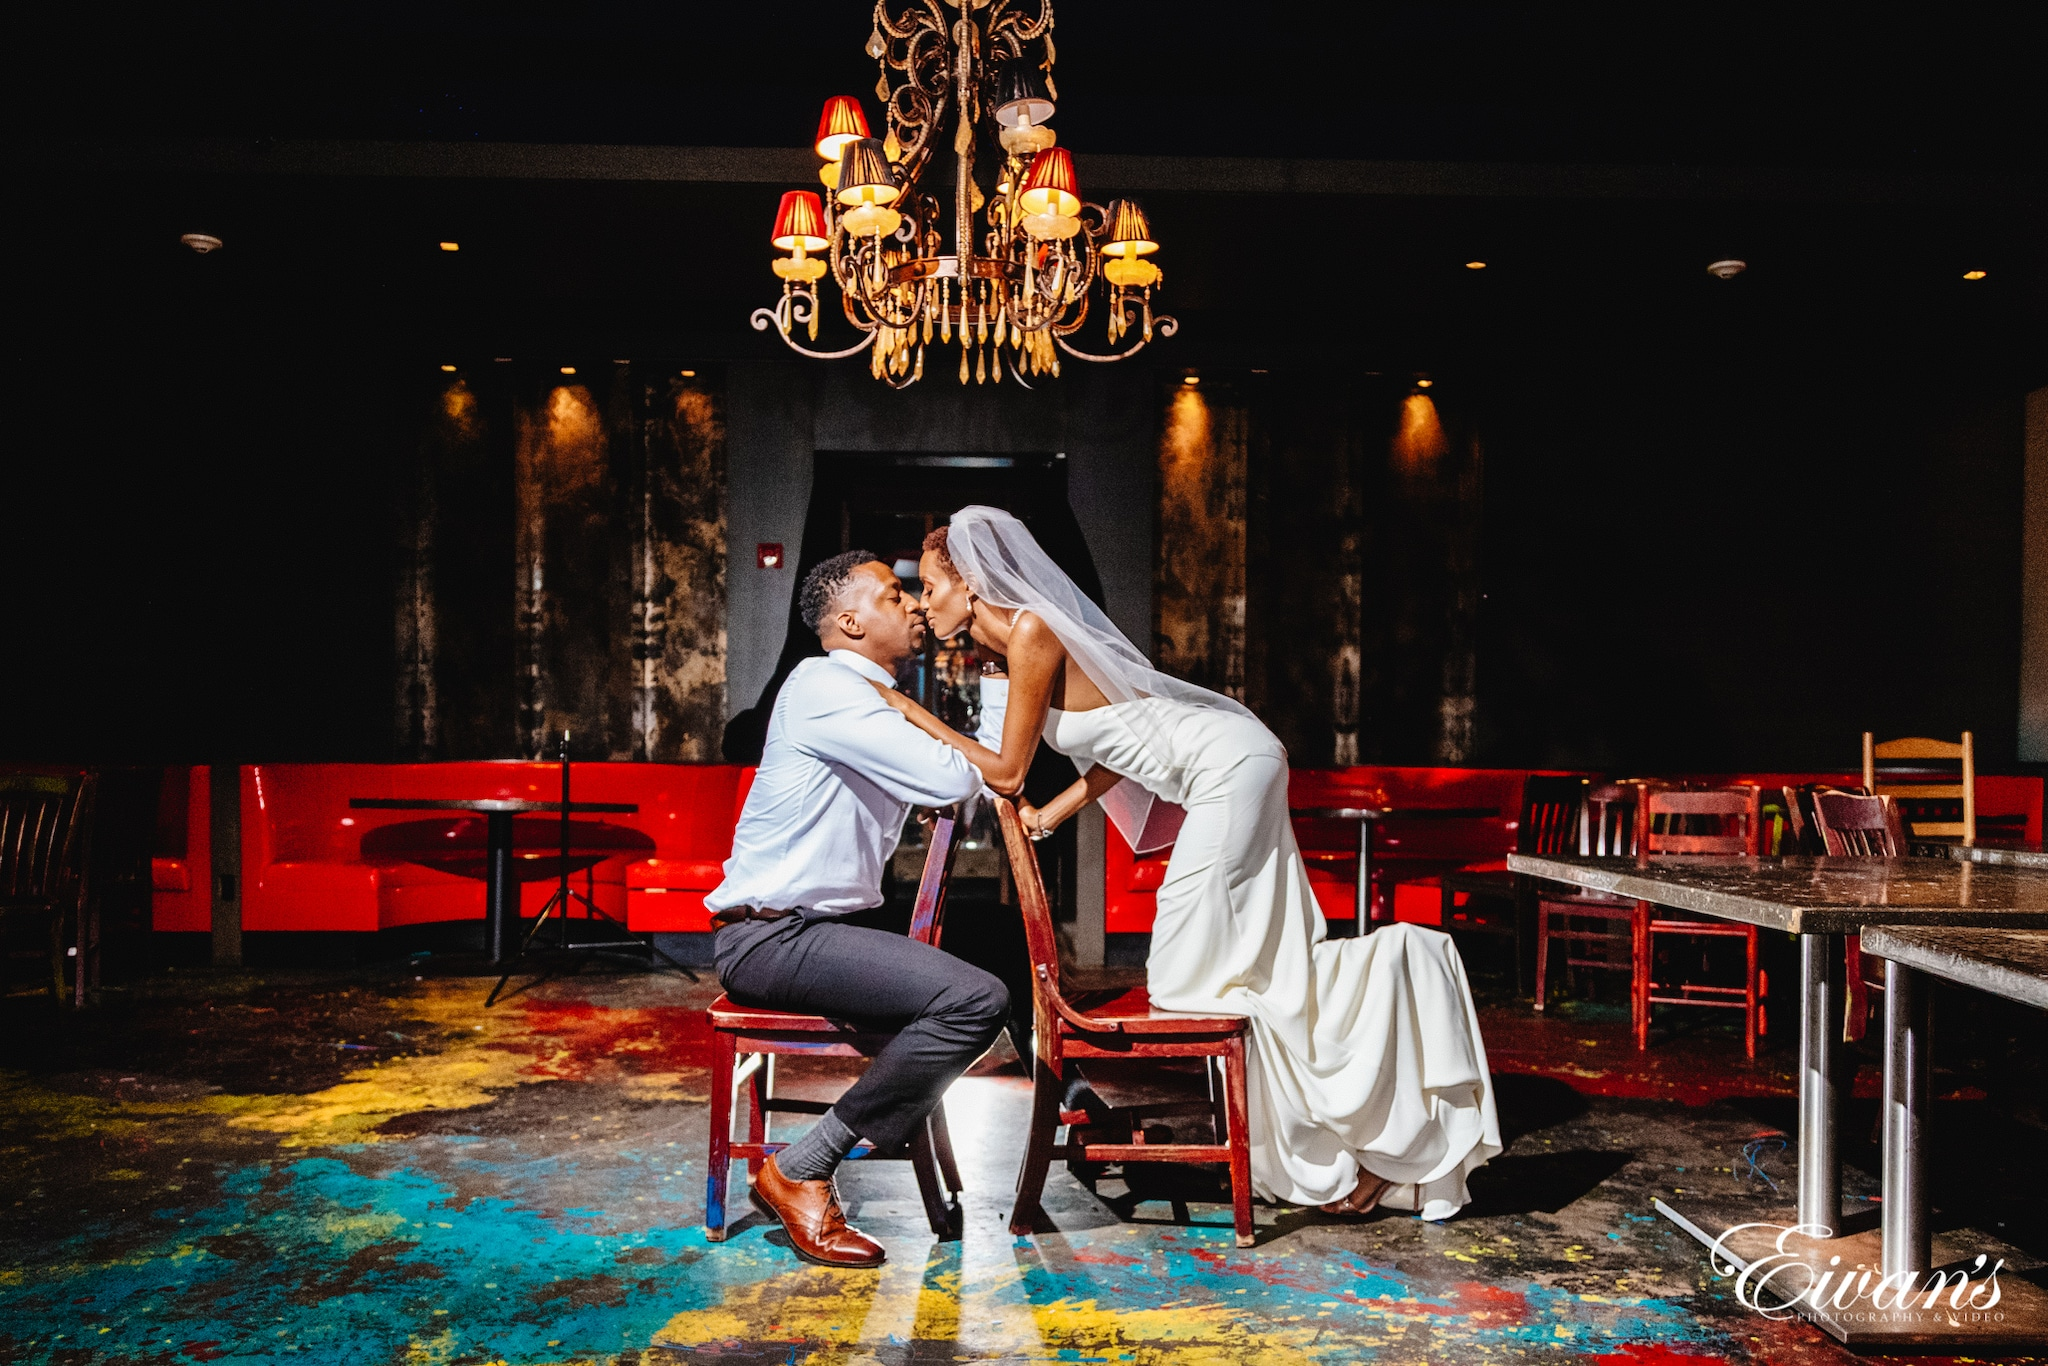 15 Artistic And Unique Wedding Photography Poses